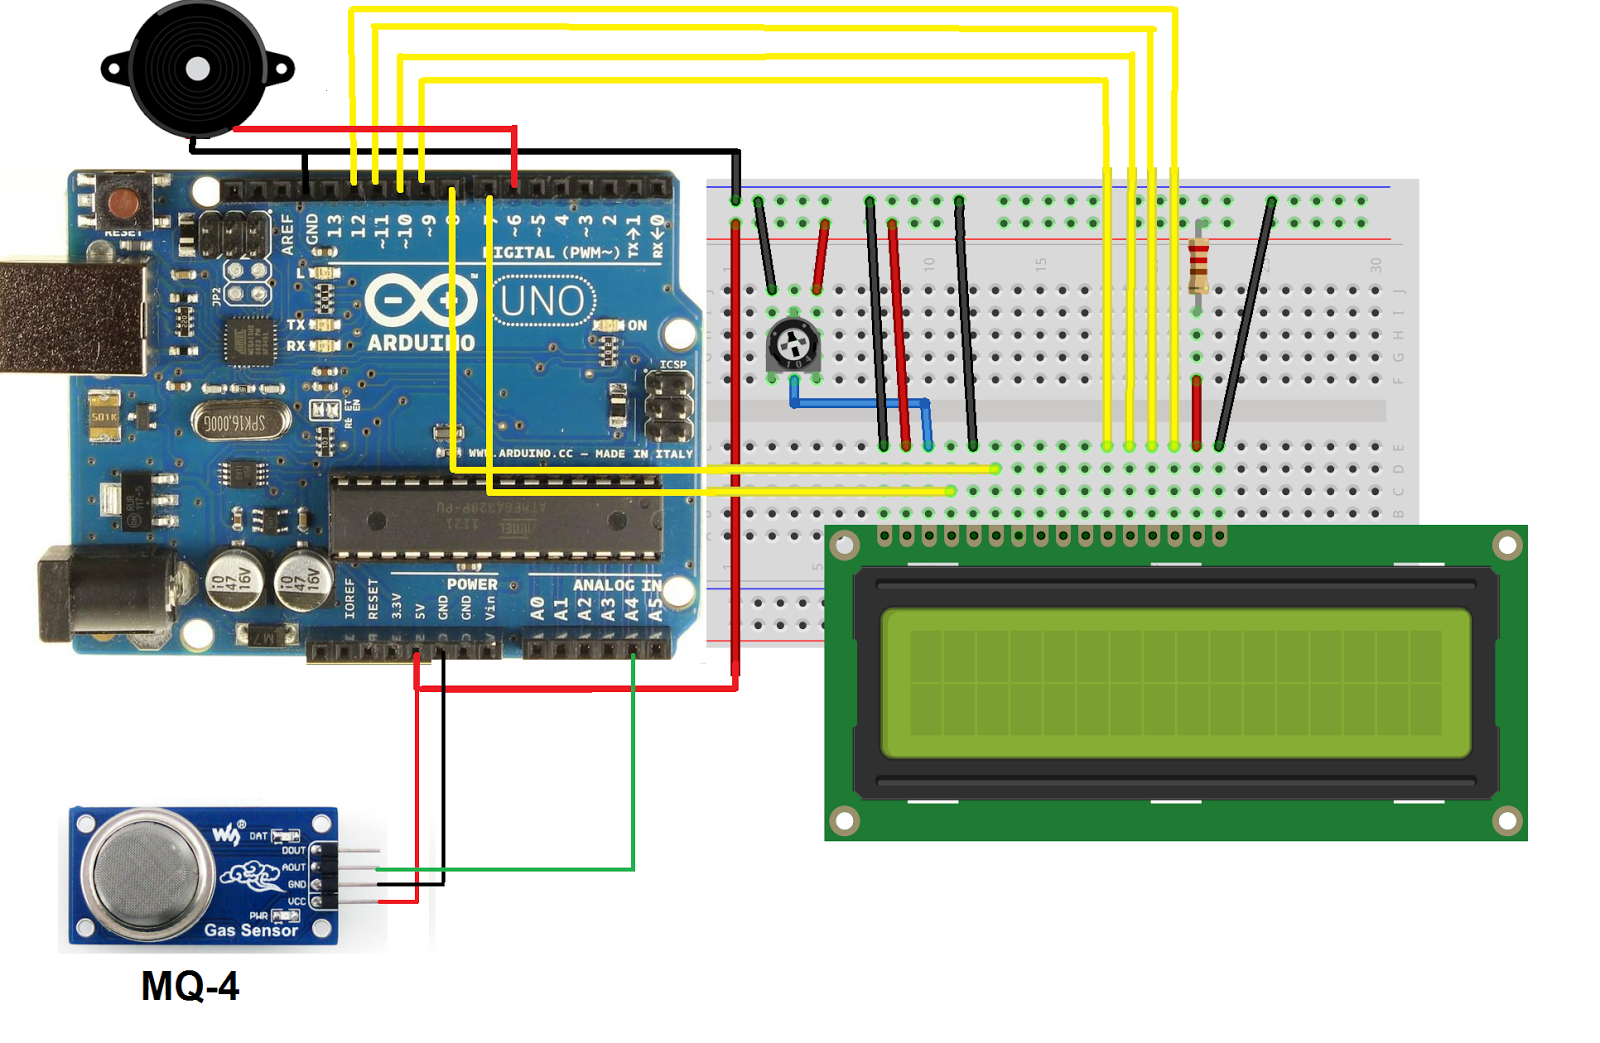 Slave Flash for Digital Cameras - Elektor